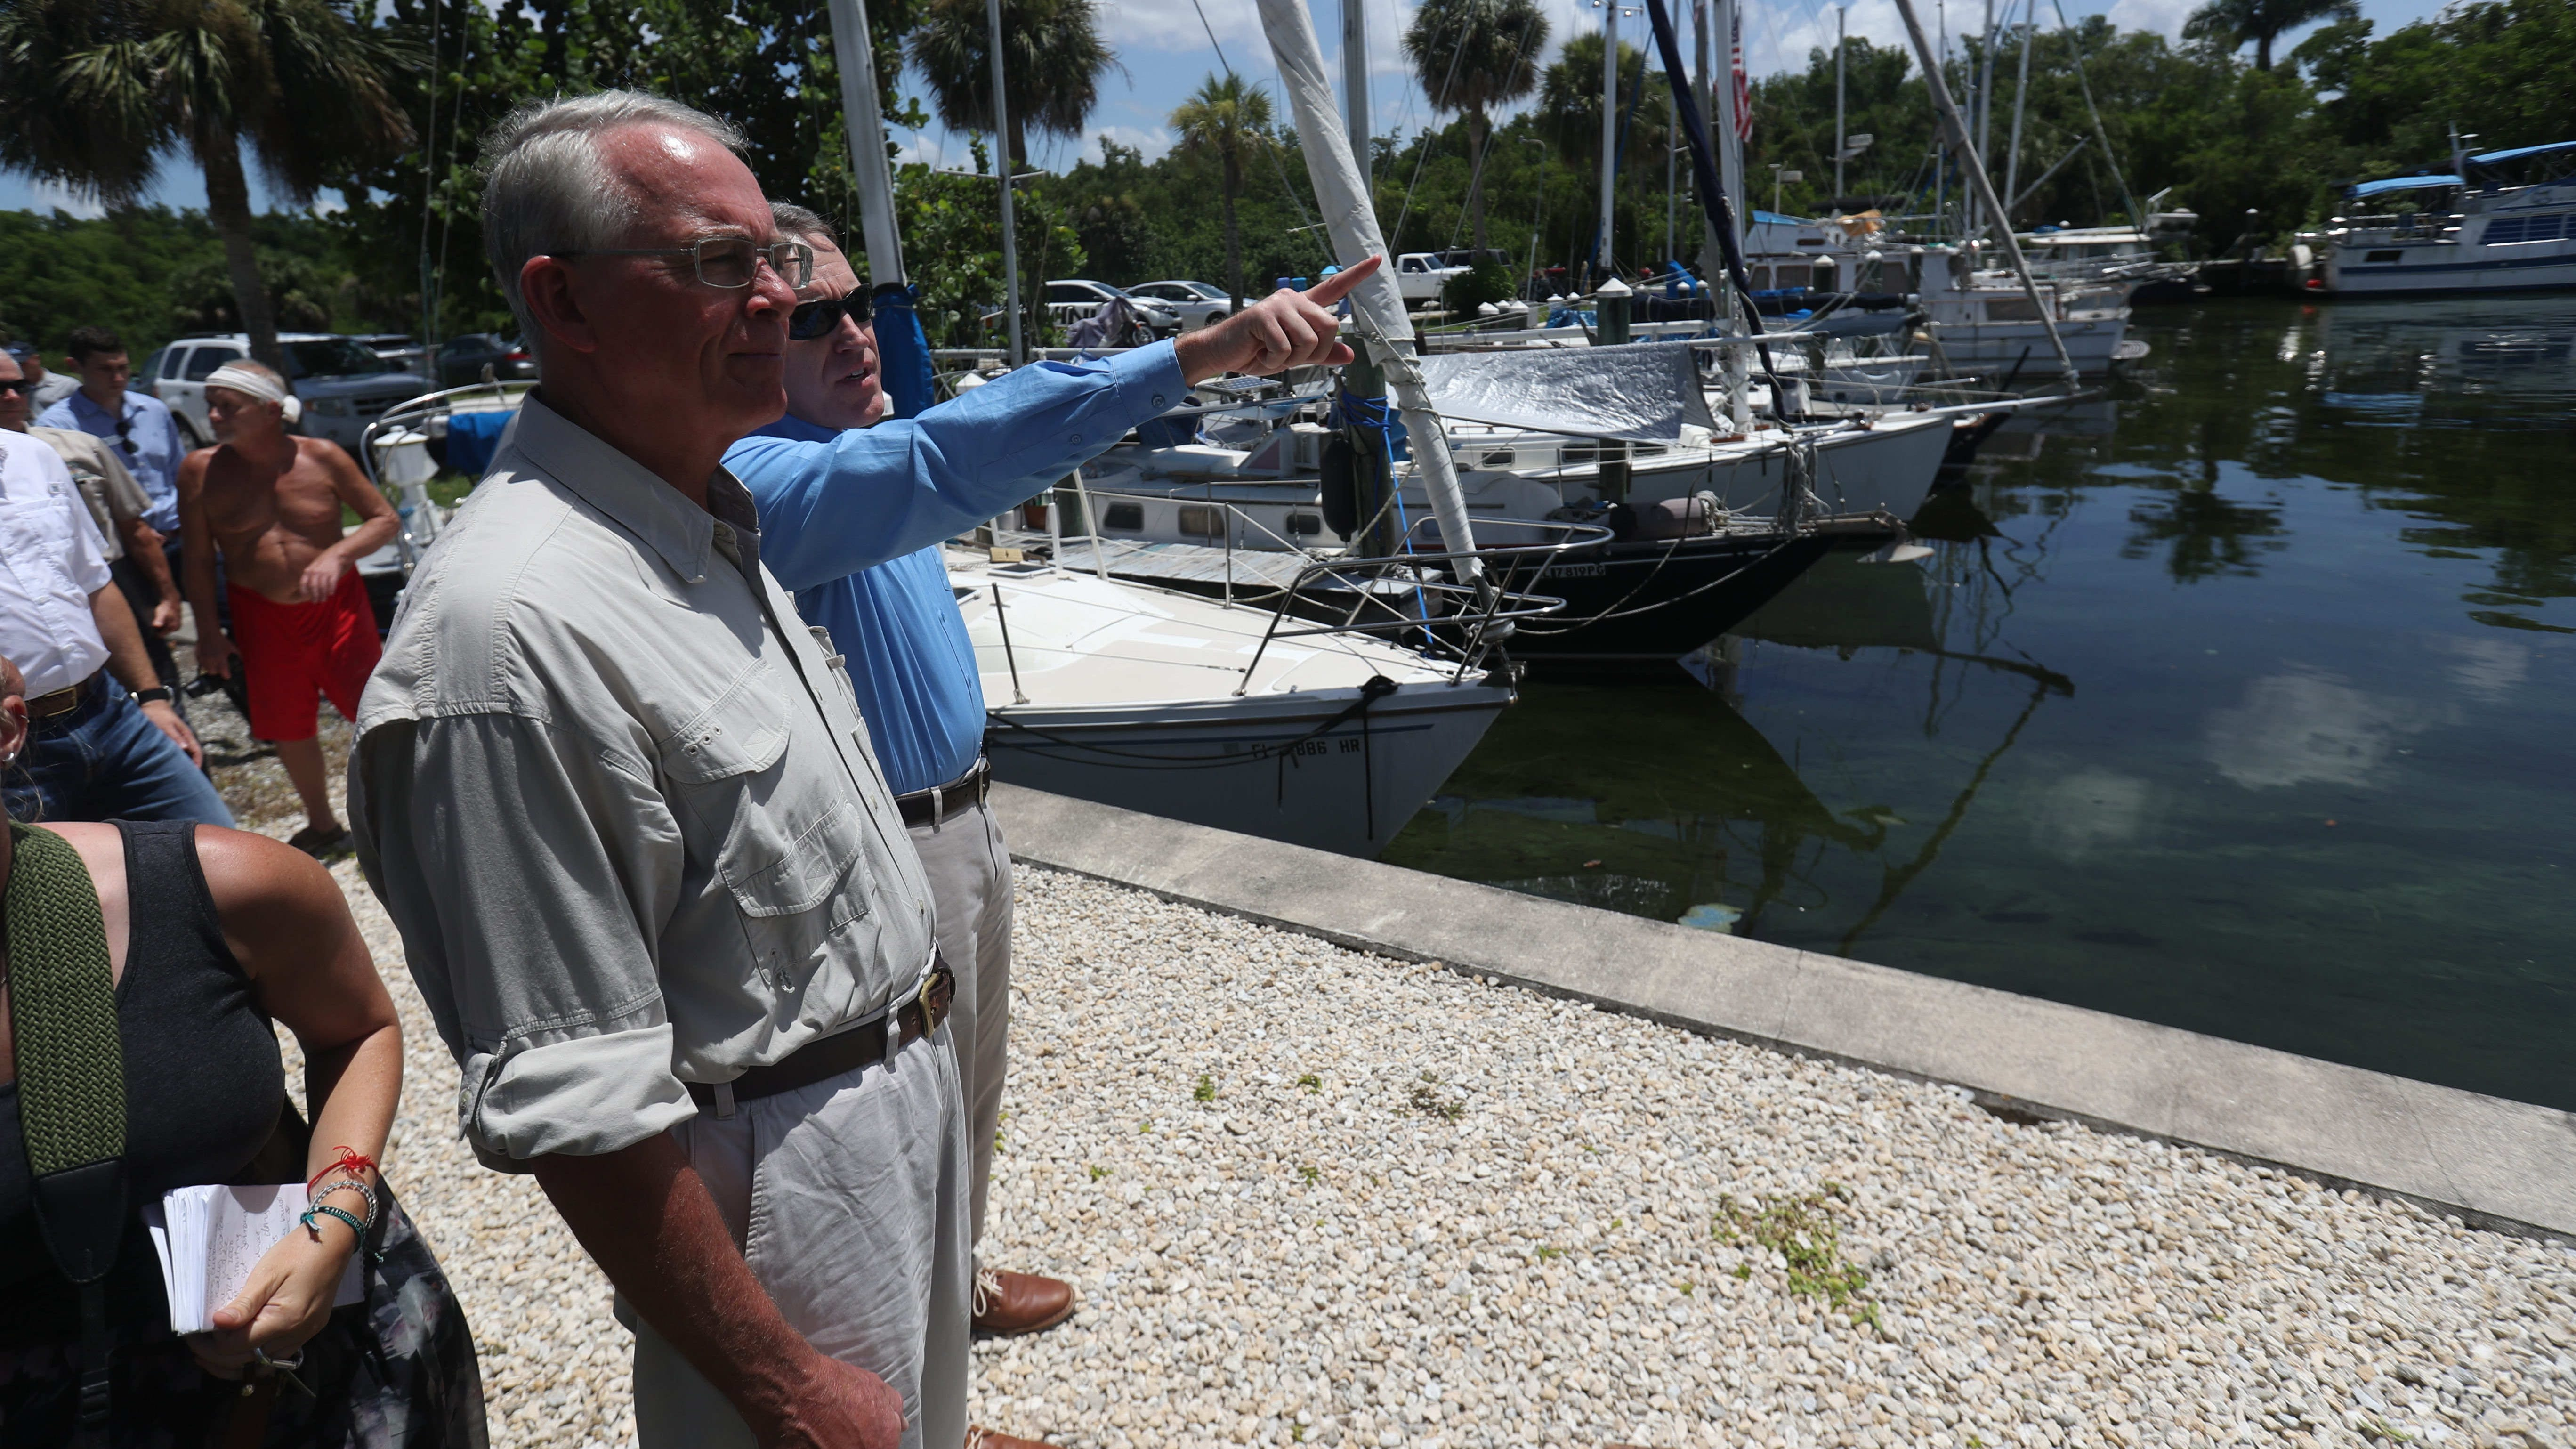 Florida algae crisis: Rooney rallies feds through Fort Myers area tour